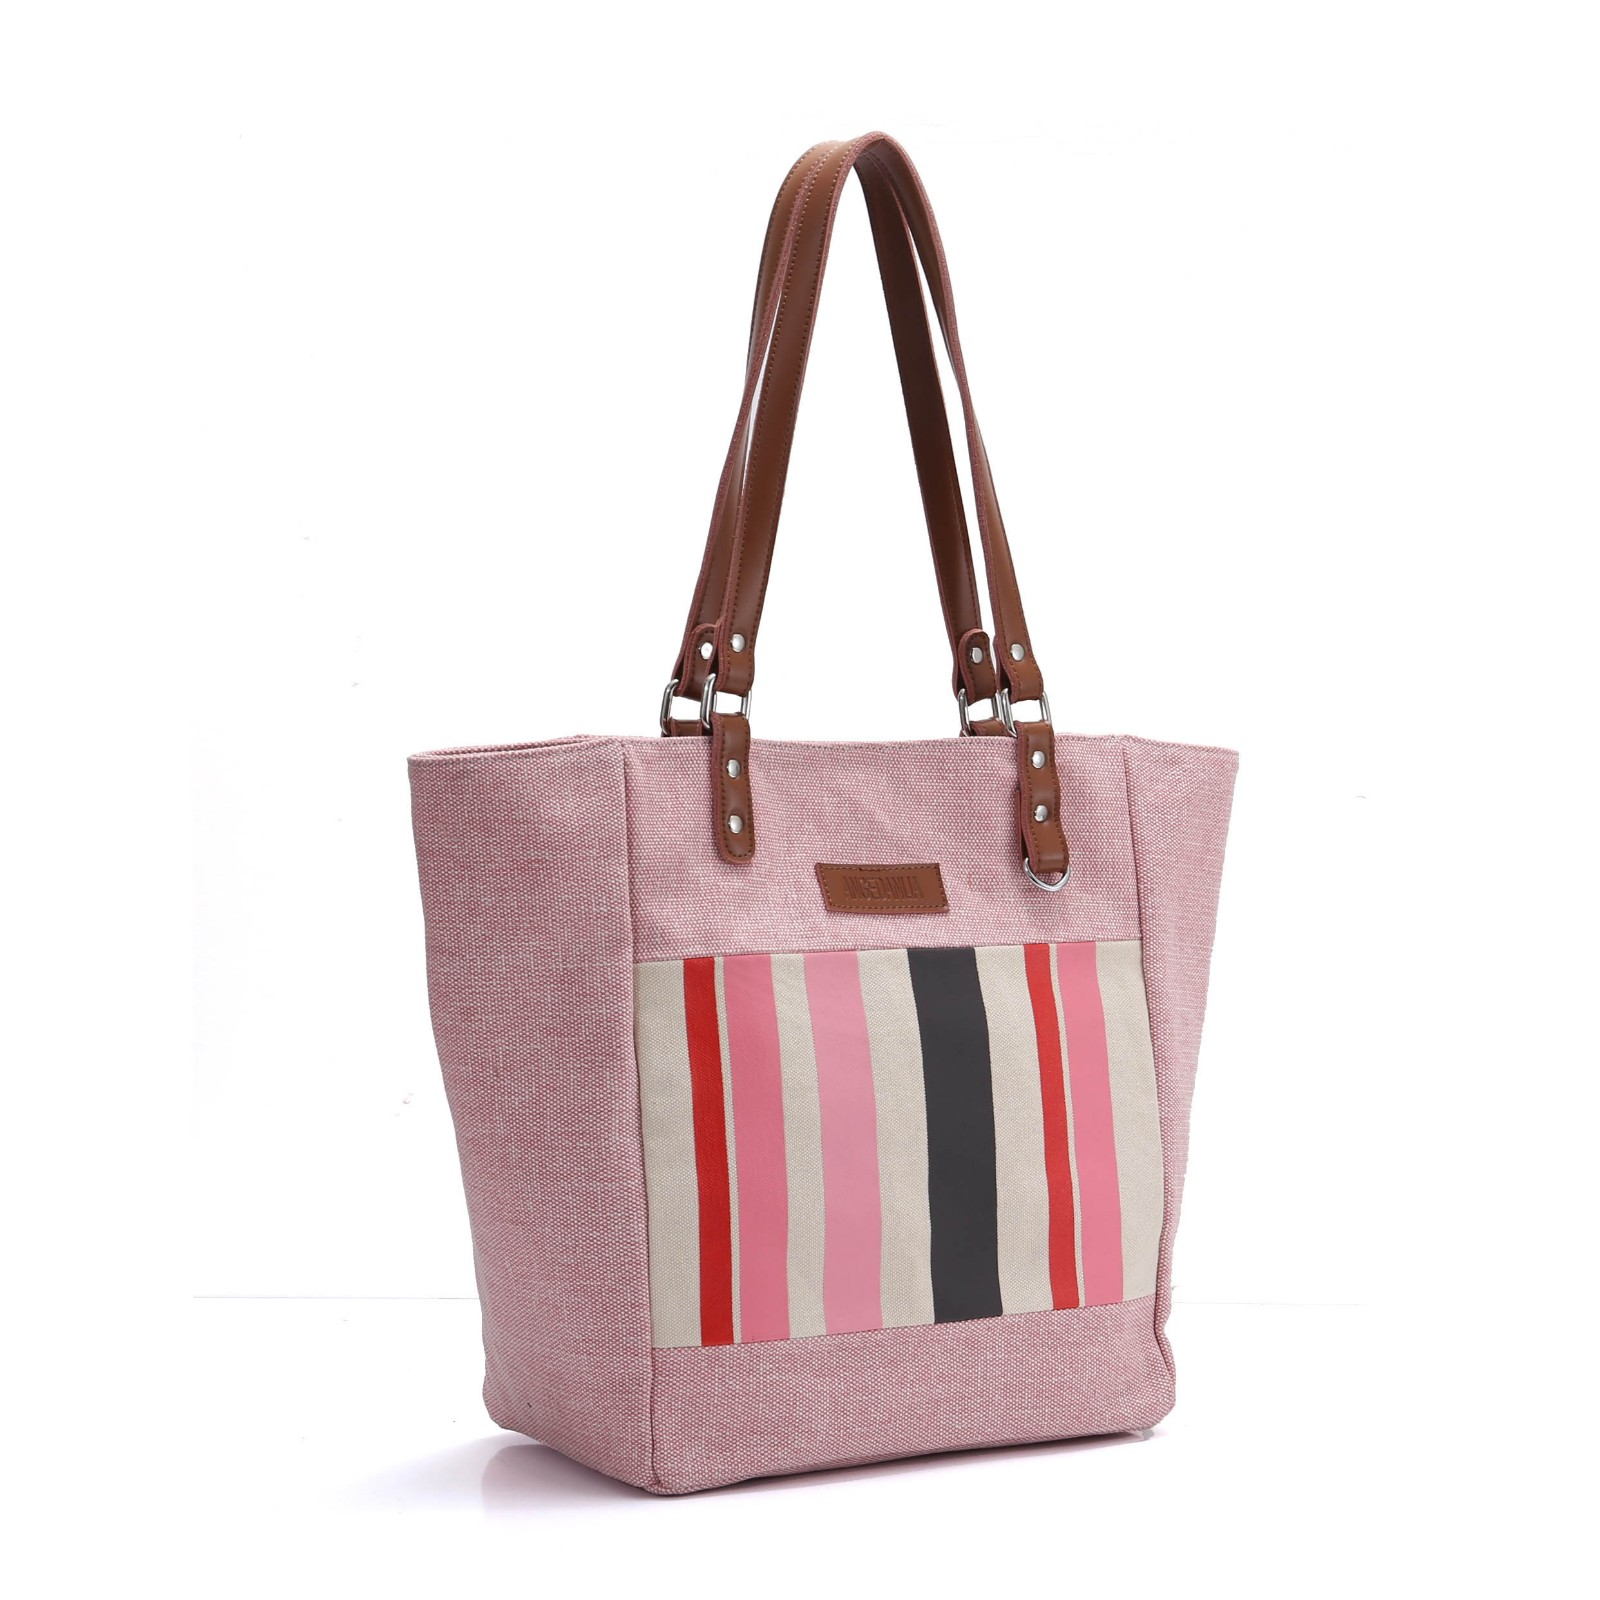 ANGEDANLIA bags canvas and leather bag with zipper for daily life-6